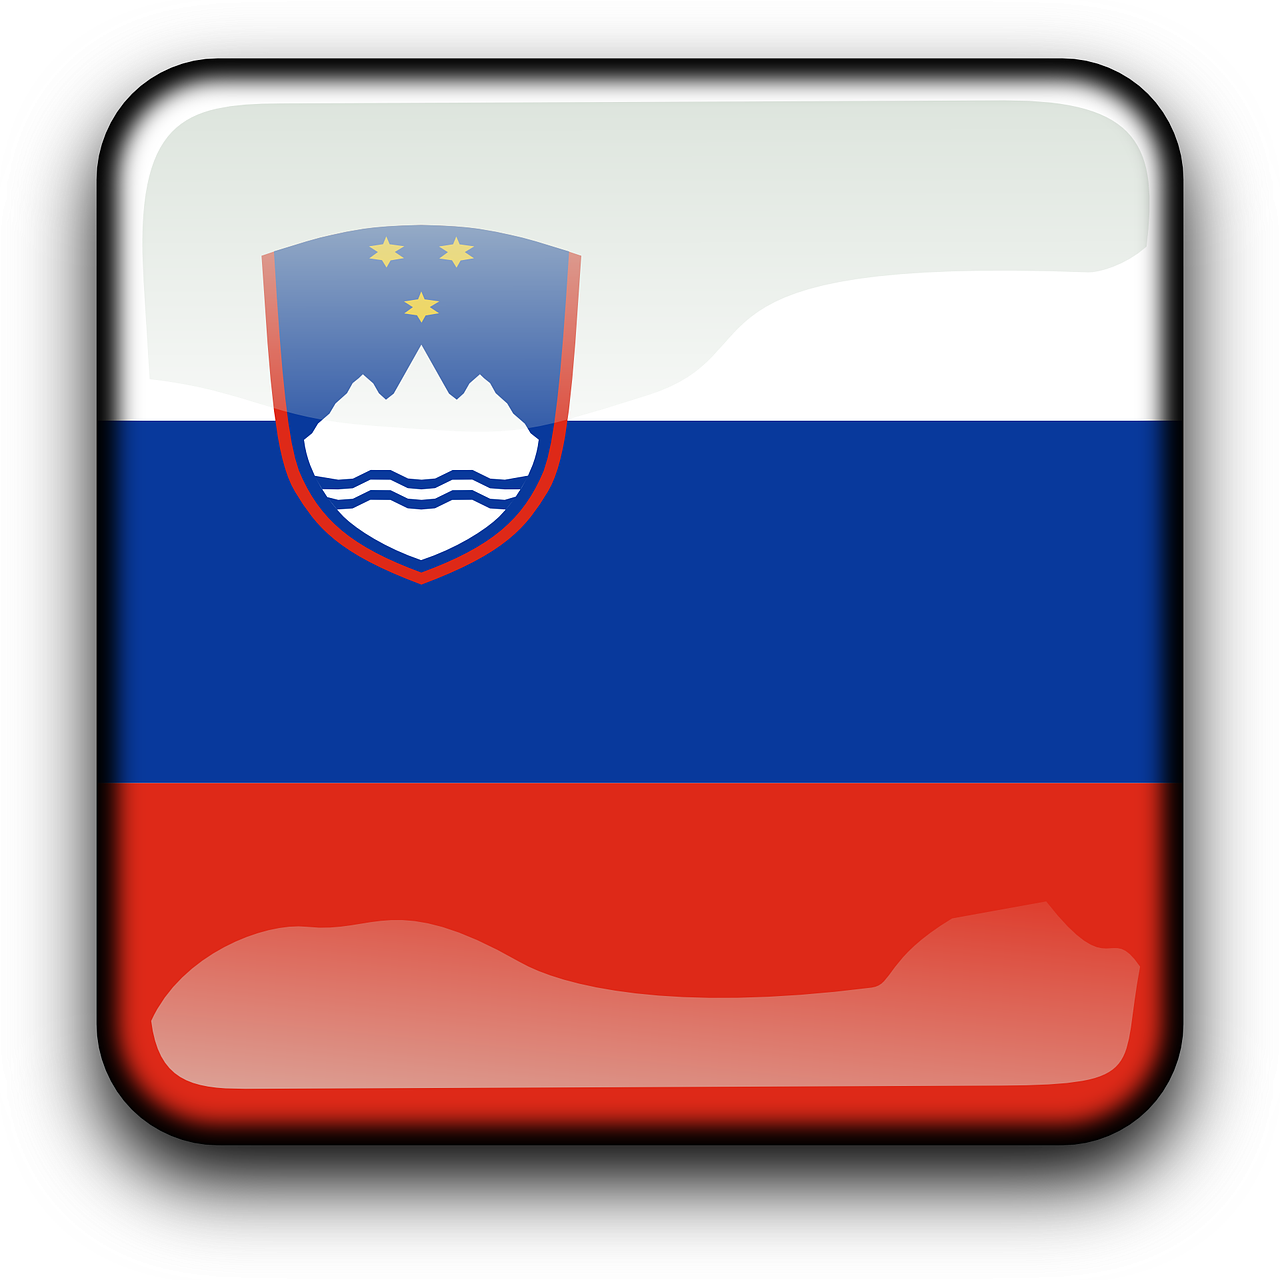 slovenia,flag,country,nationality,square,button,glossy,free vector graphics,free pictures, free photos, free images, royalty free, free illustrations, public domain